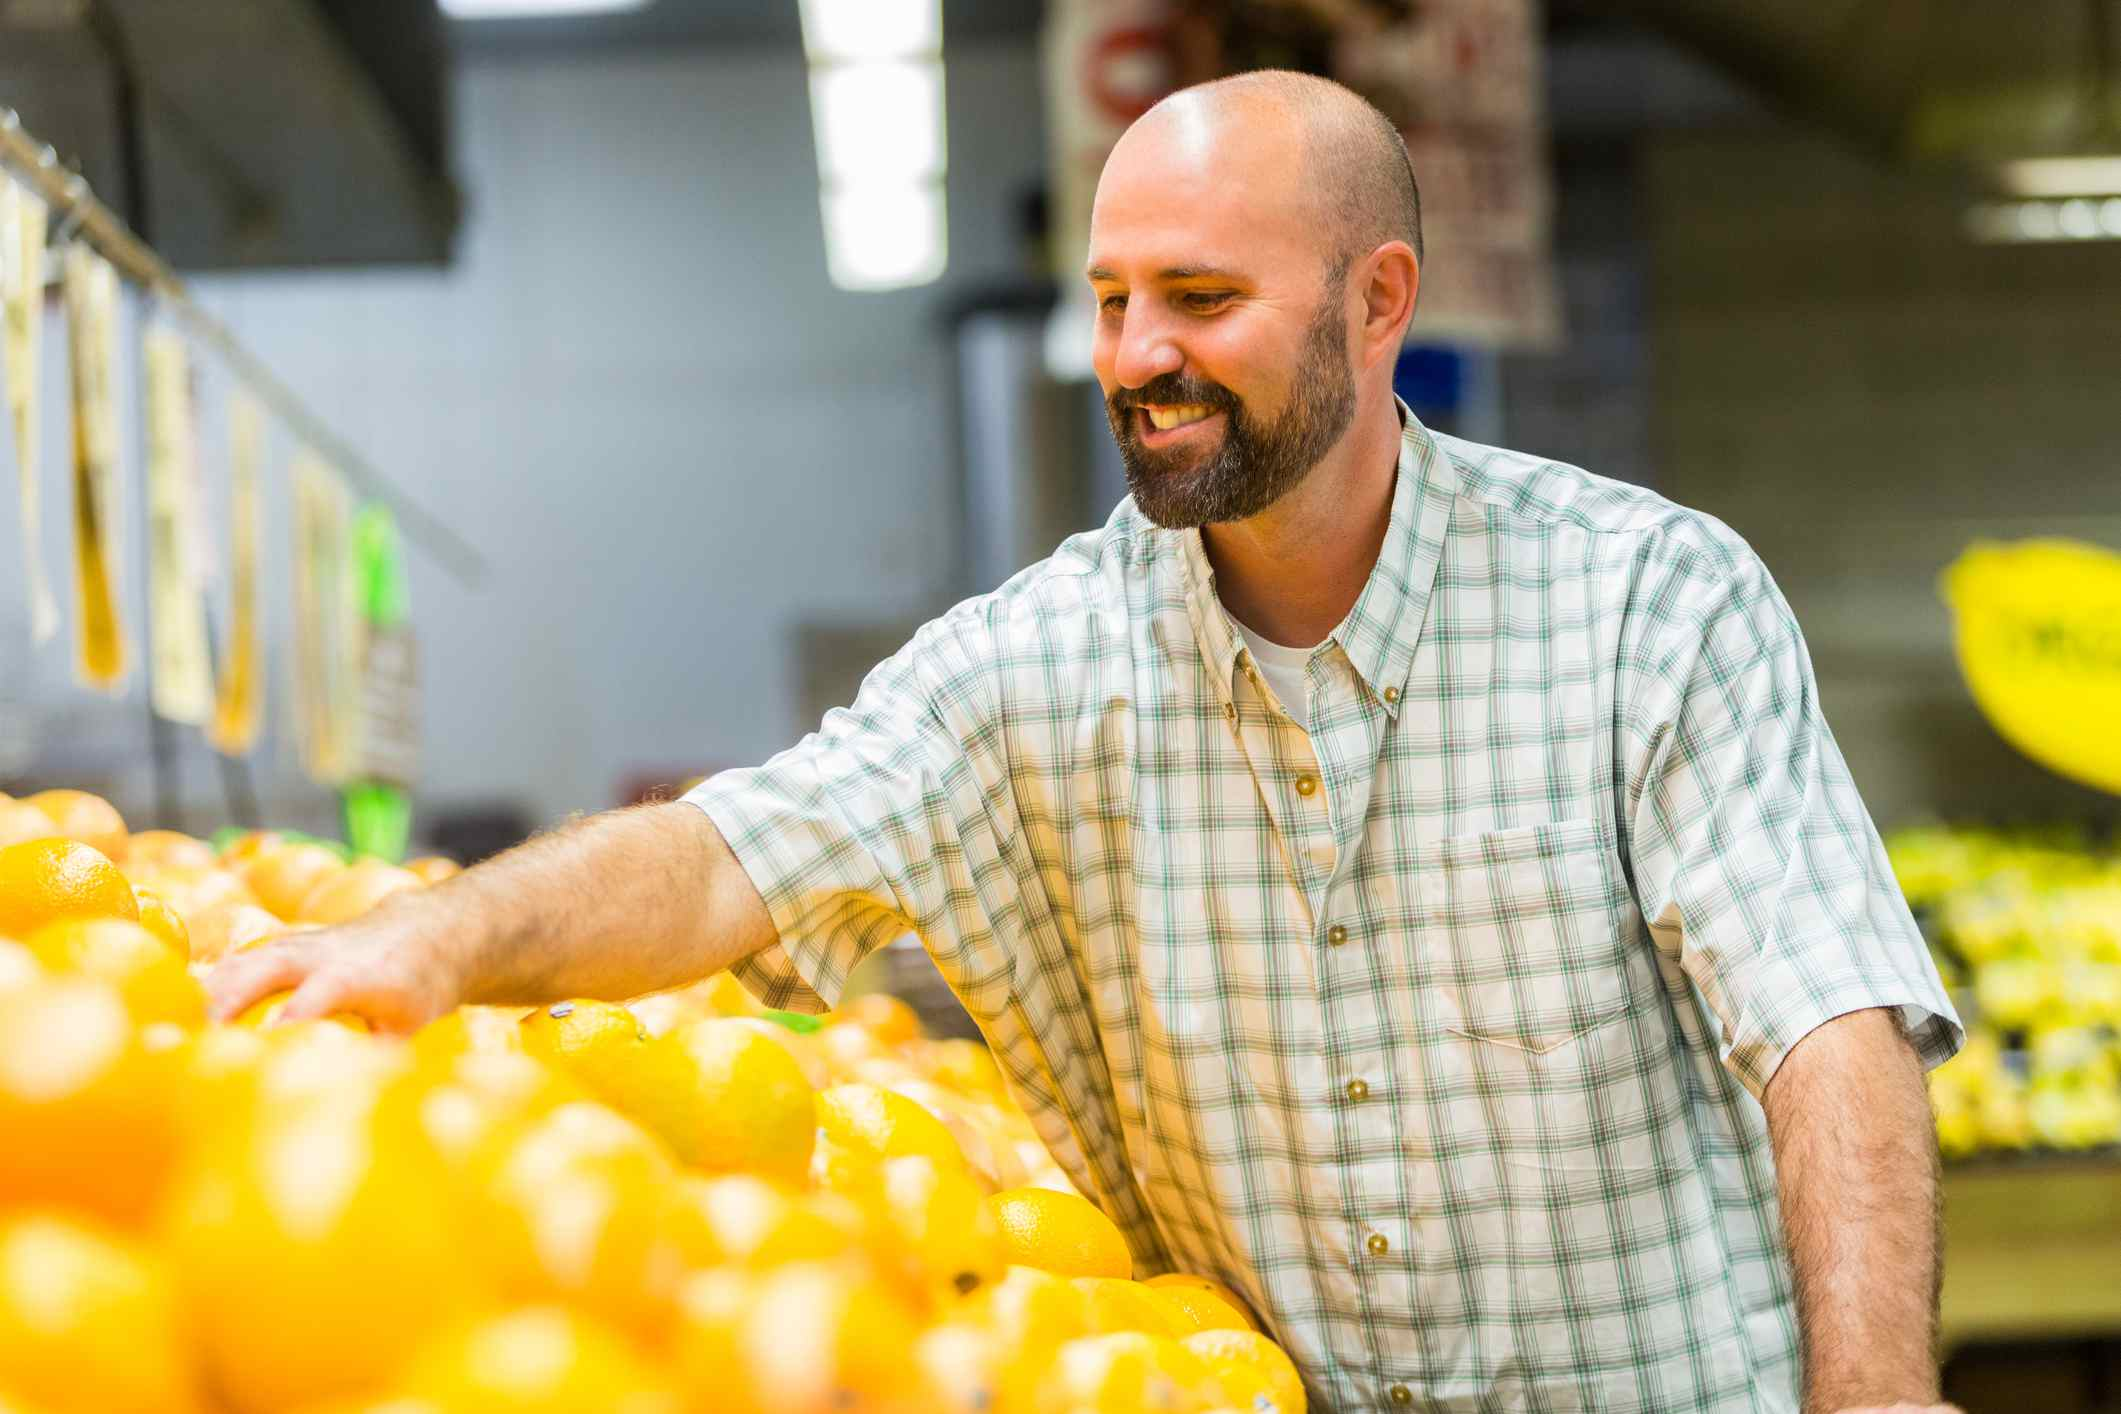 man spending ARRA tax cuts on yellow peppers